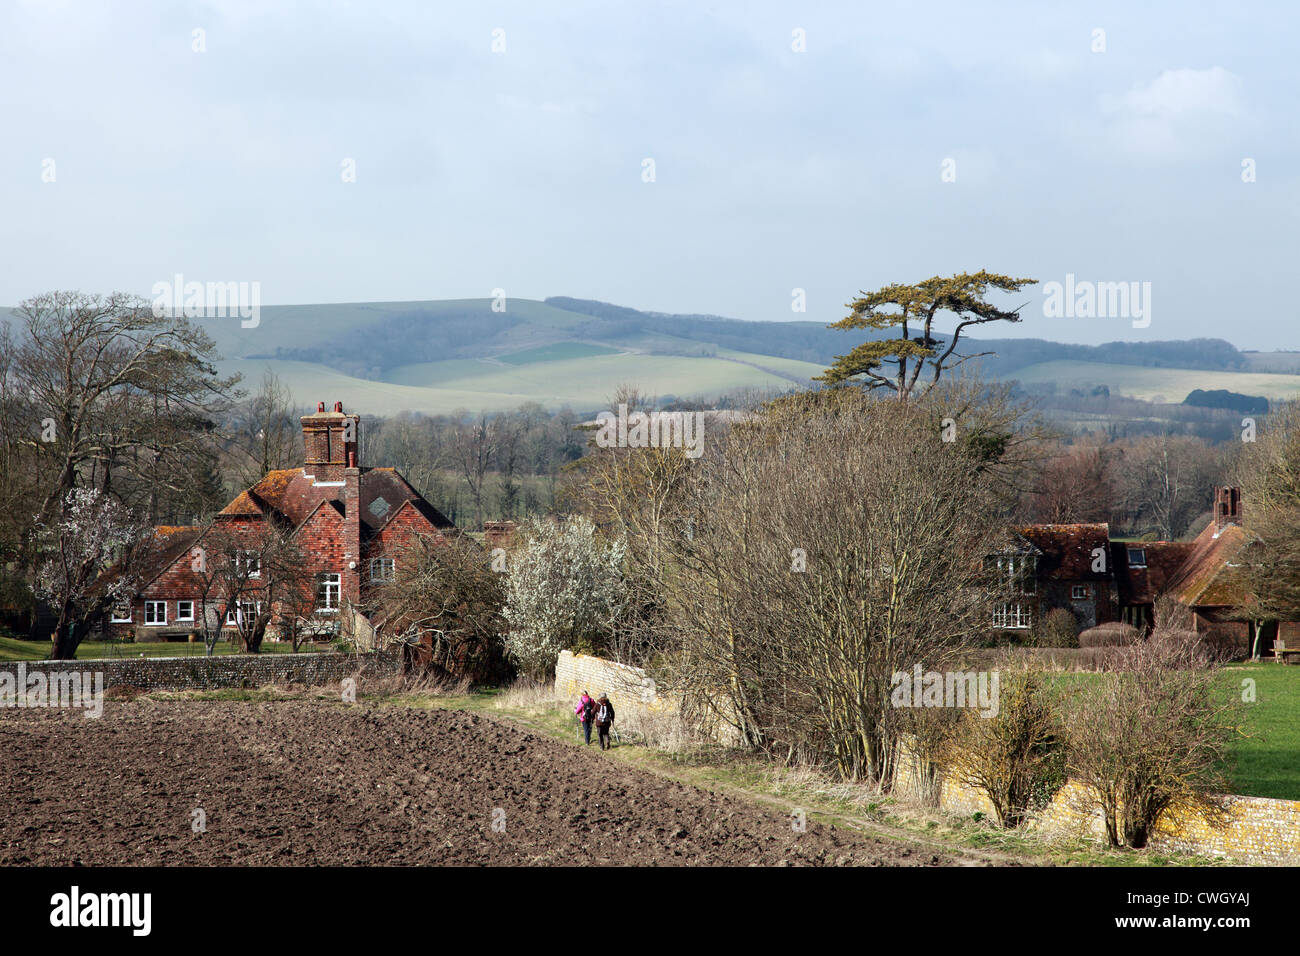 Country houses near Firle Place, East Sussex, England Stock Photo